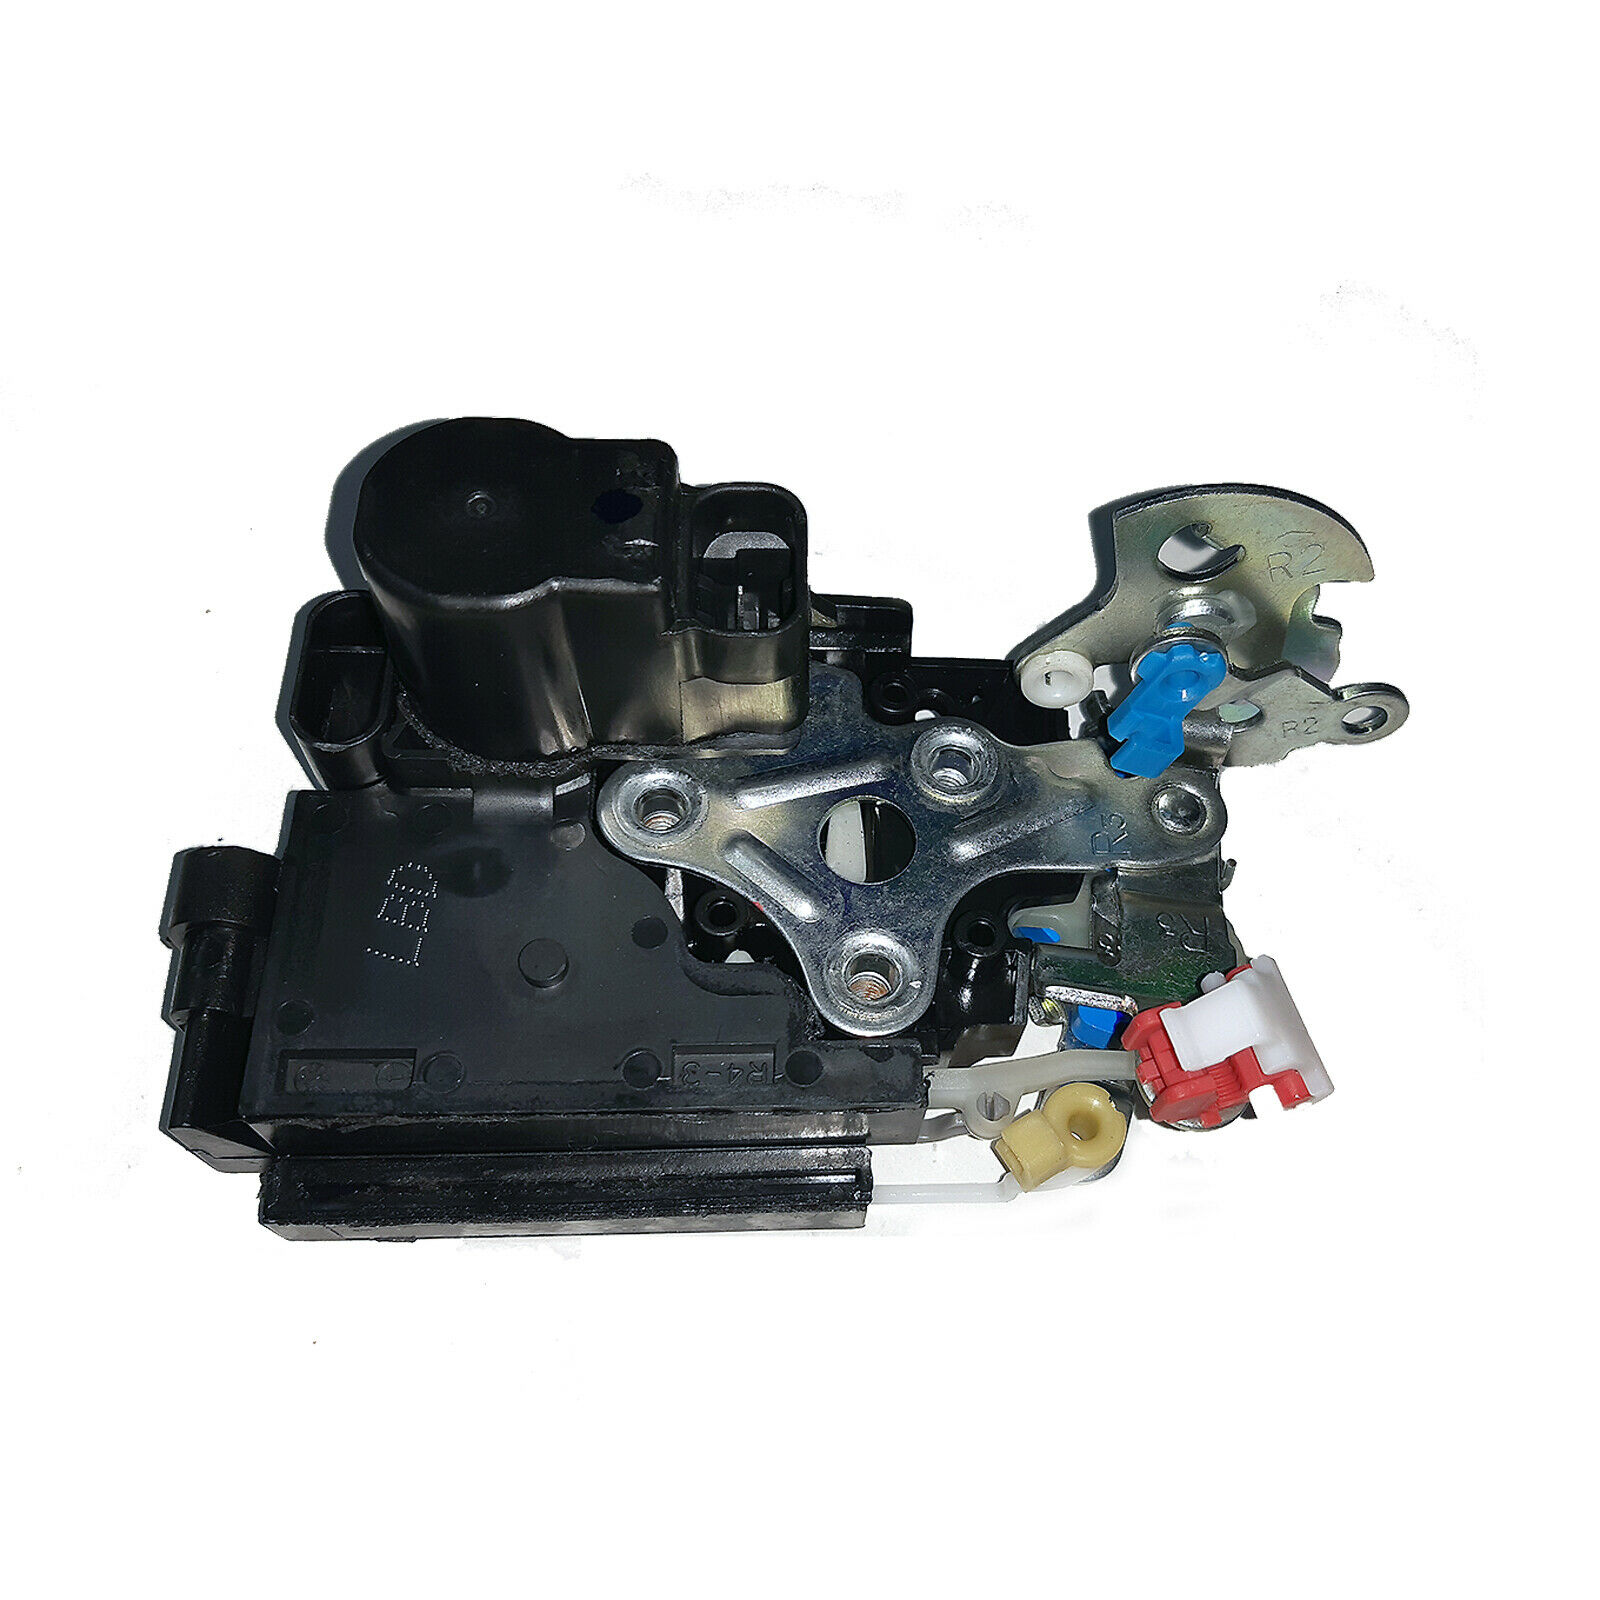 cheapest 372 472 engine water pump for Chery QQ  372-1307010auto Replacement accessor Cooling System